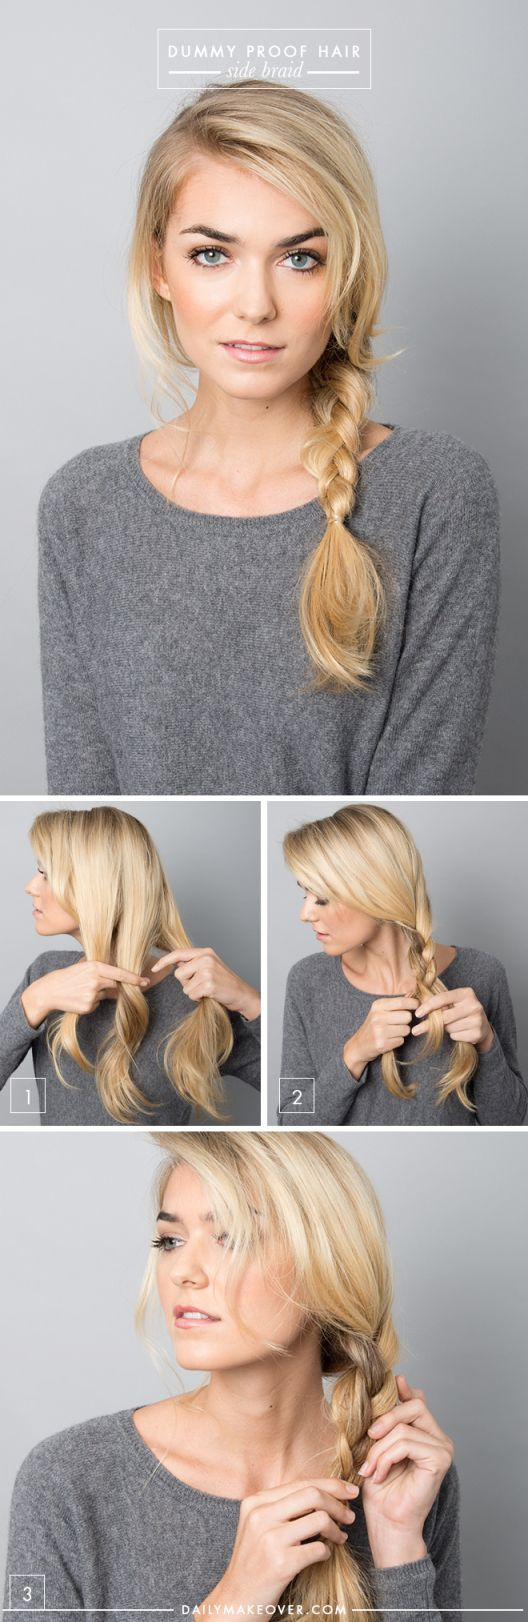 best 25+ business hairstyles ideas on pinterest | french roll updo